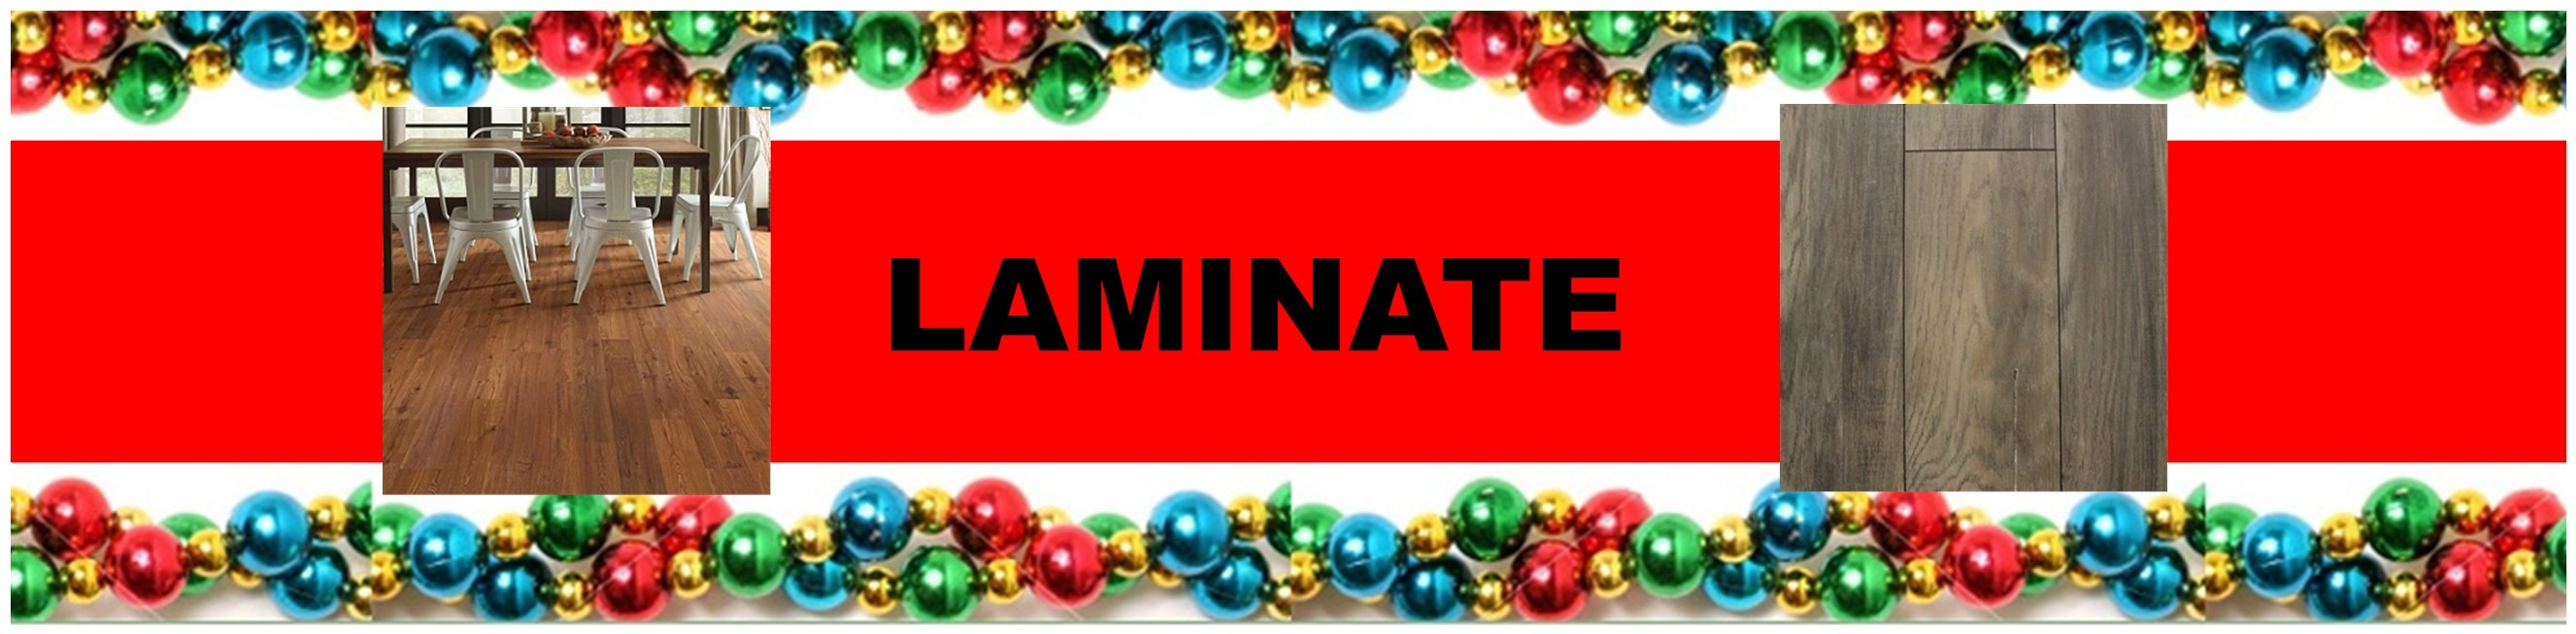 CHRISTMAS LAMINATE HEADER